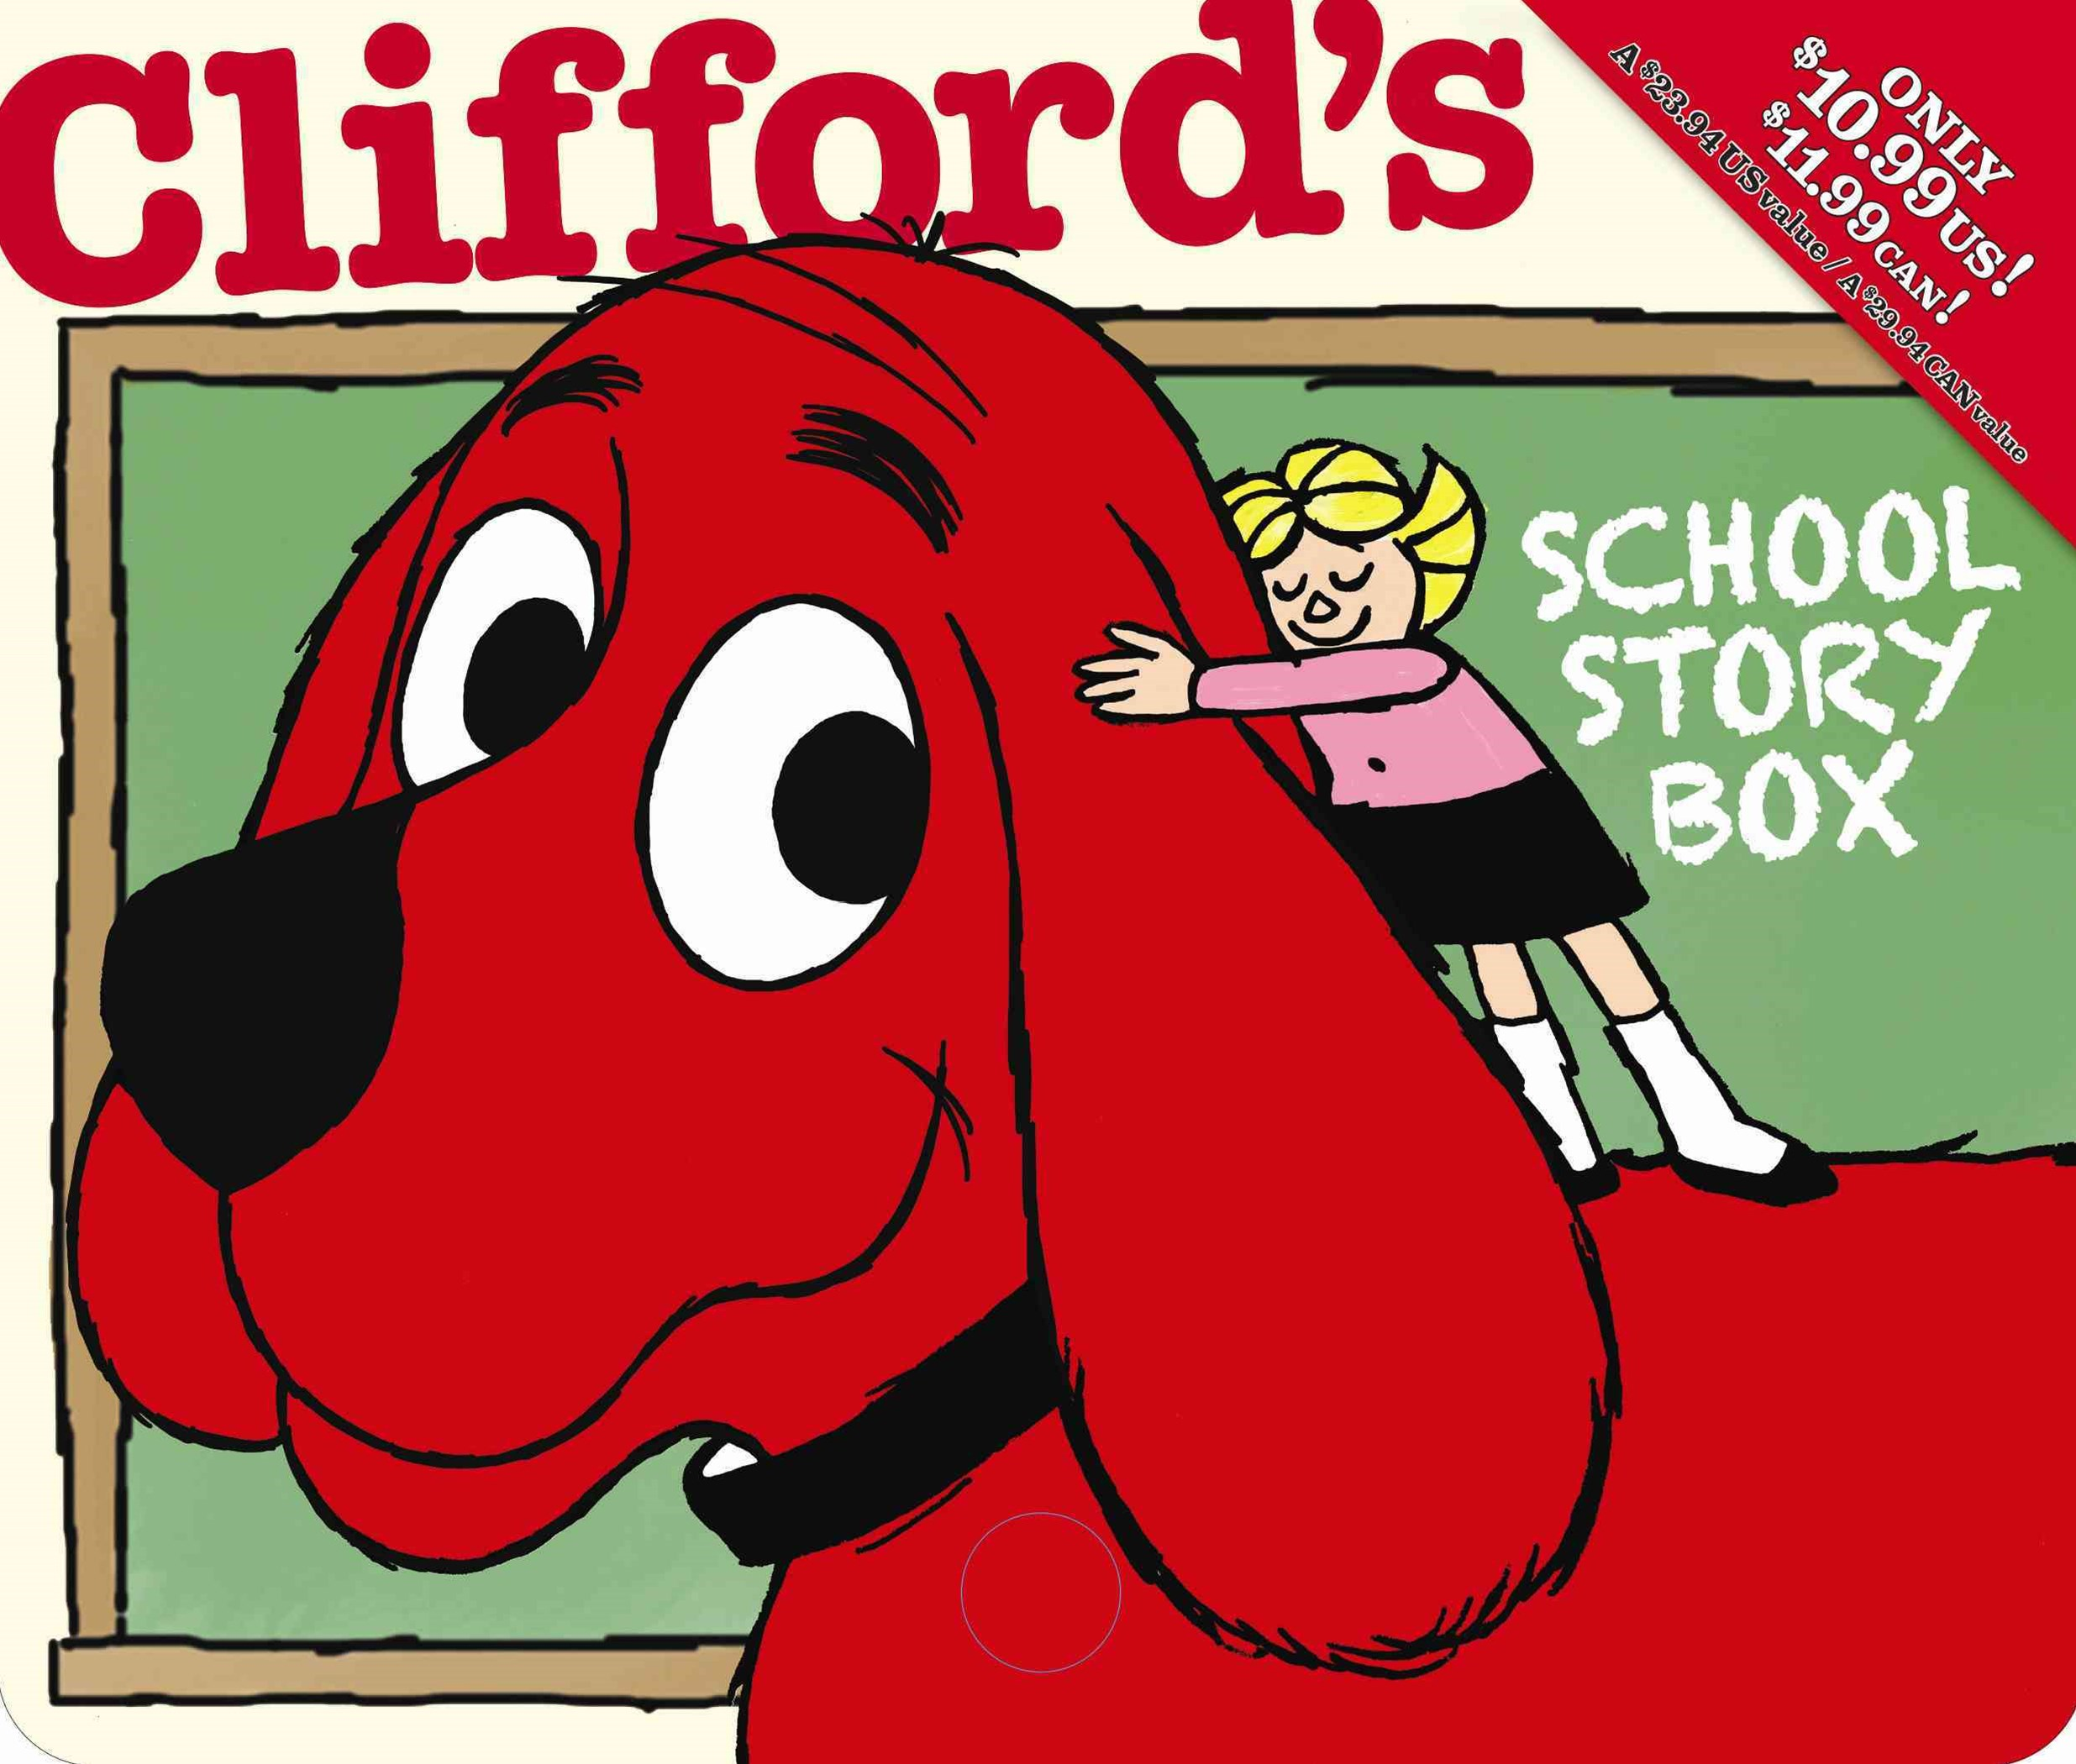 Clifford's School Story Box